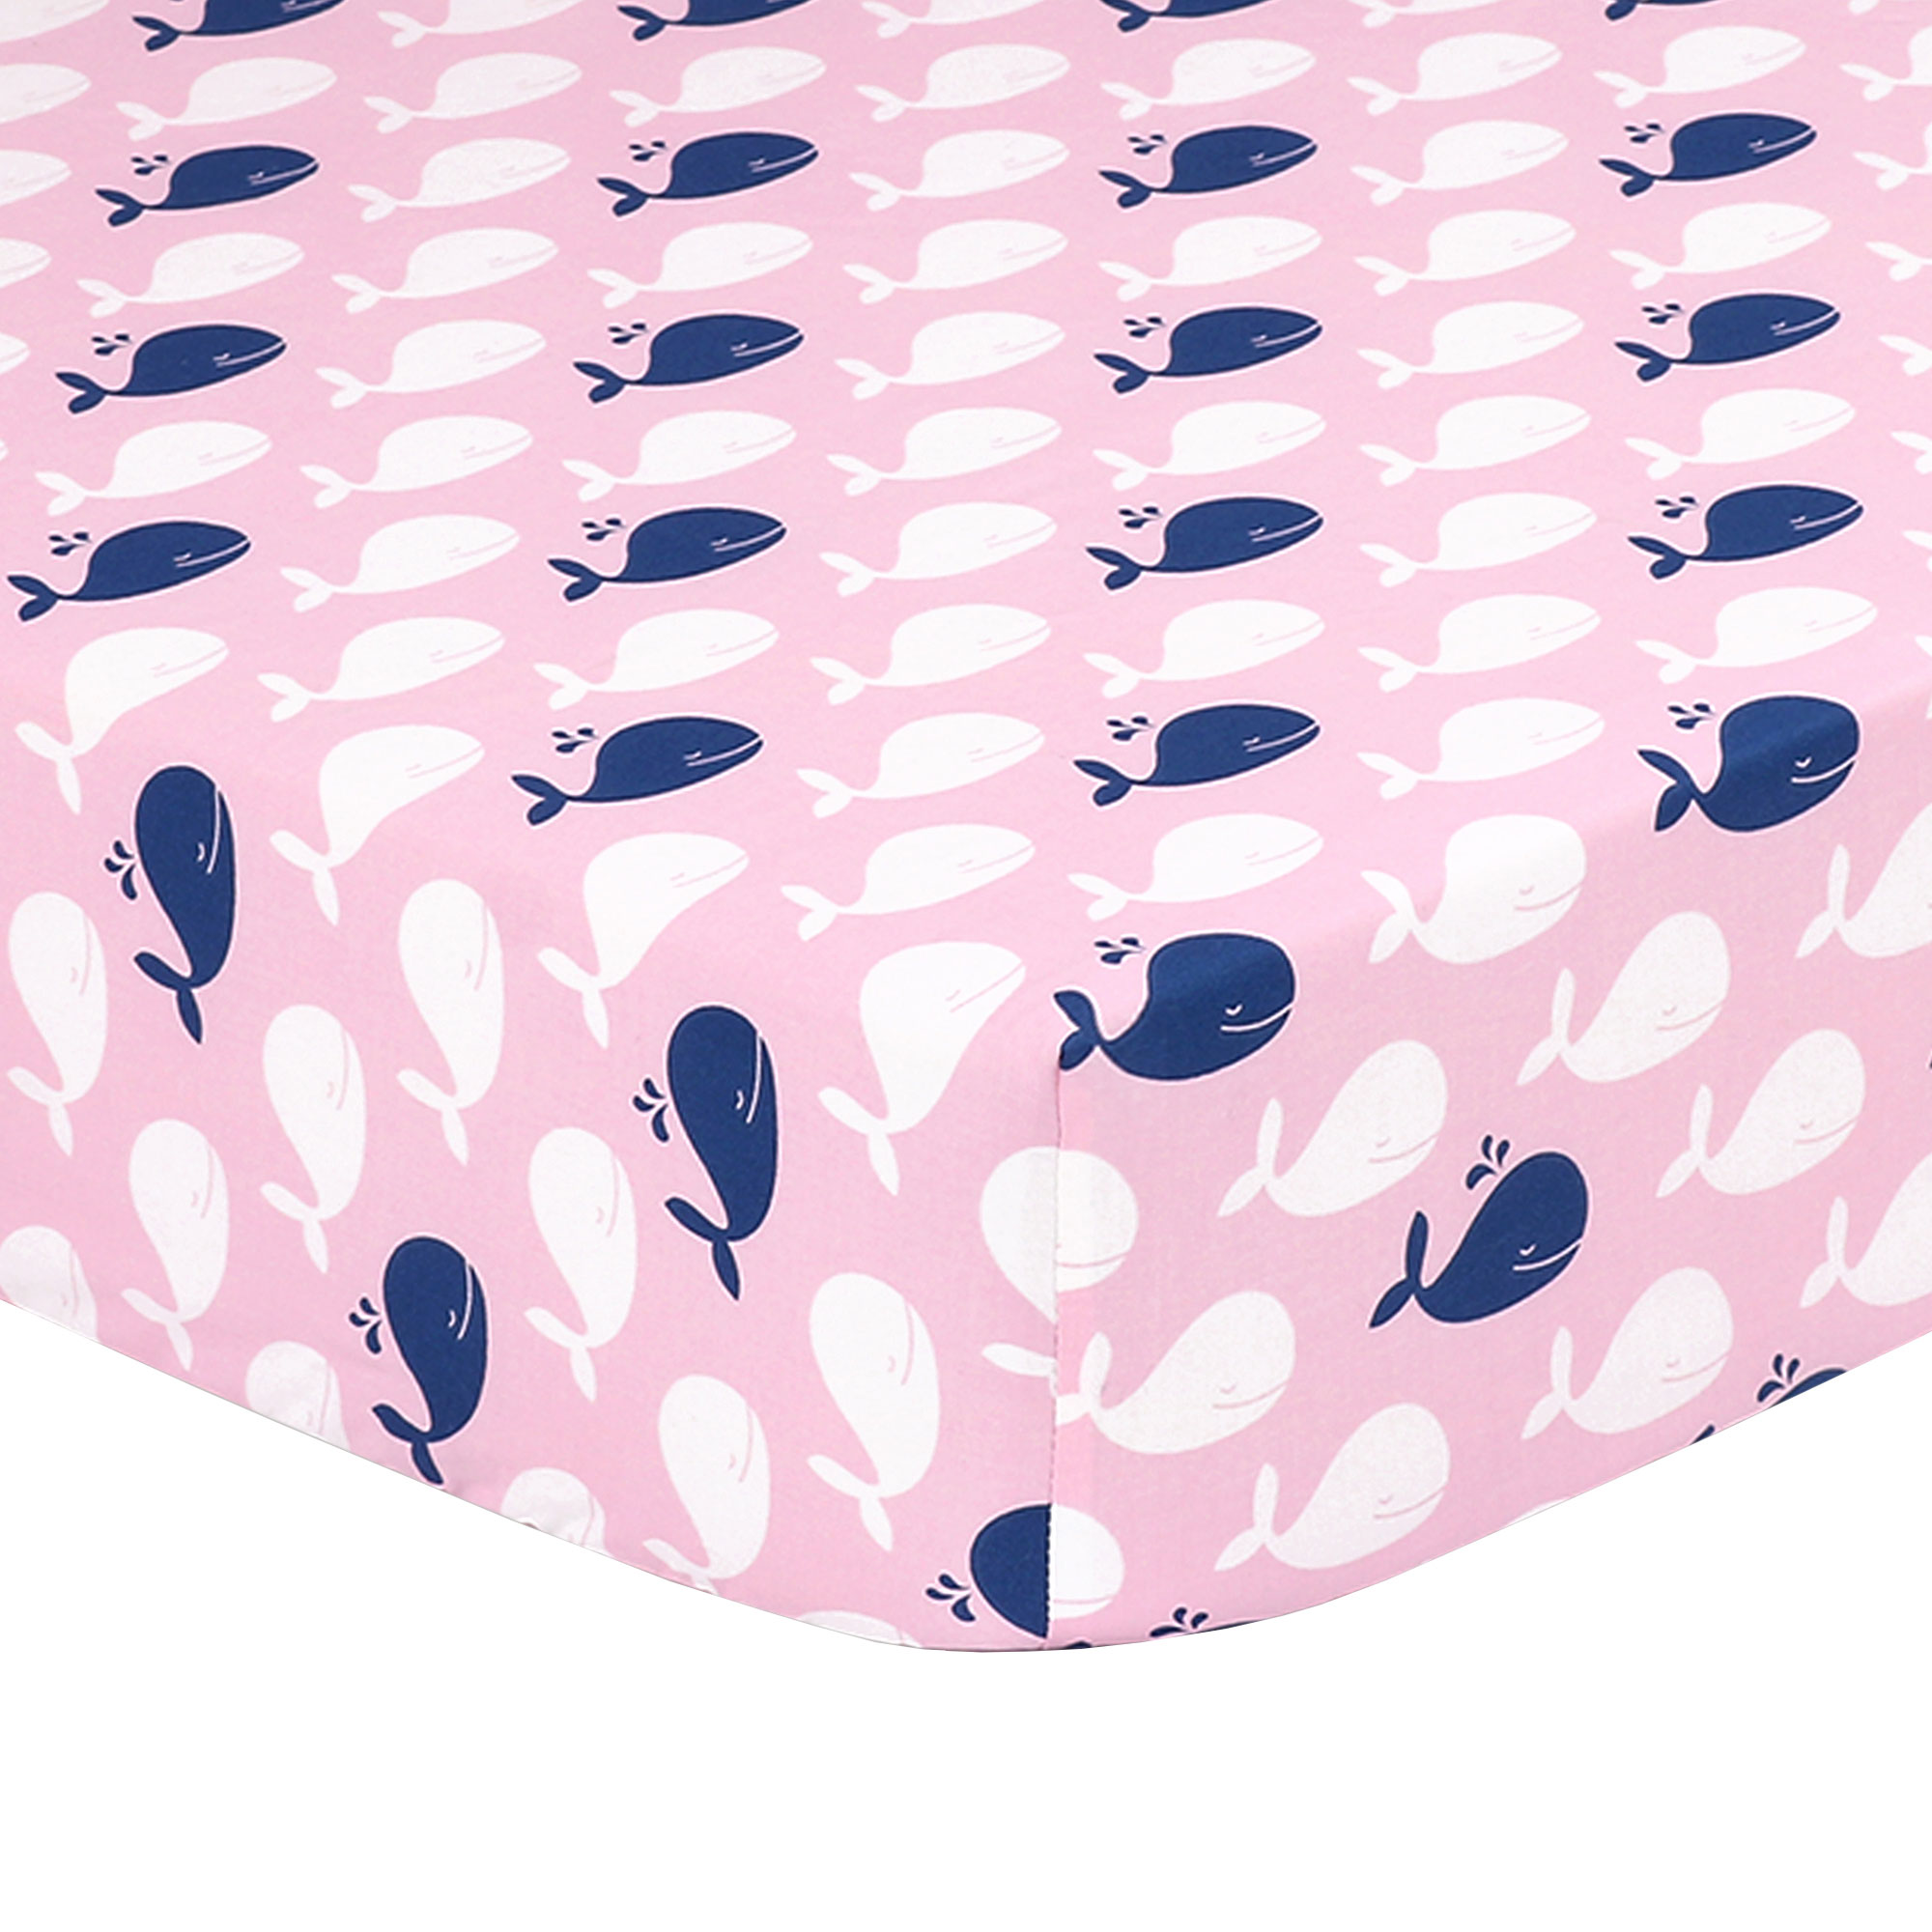 The Peanut Shell Baby Girl Fitted Crib Sheet - Navy Blue and White Whales on Pink - 100% Cotton Sateen, Fits Standard 52 by 28 Inch Mattress